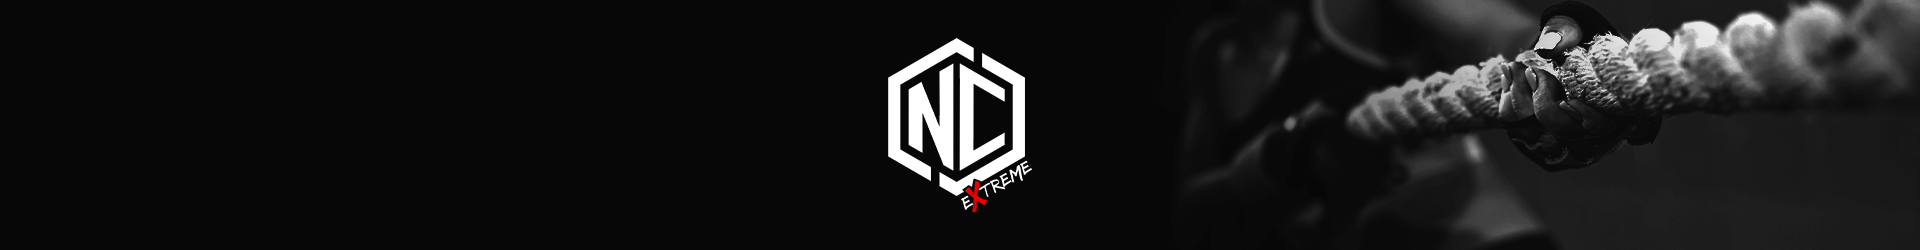 MARCA - NC Extreme